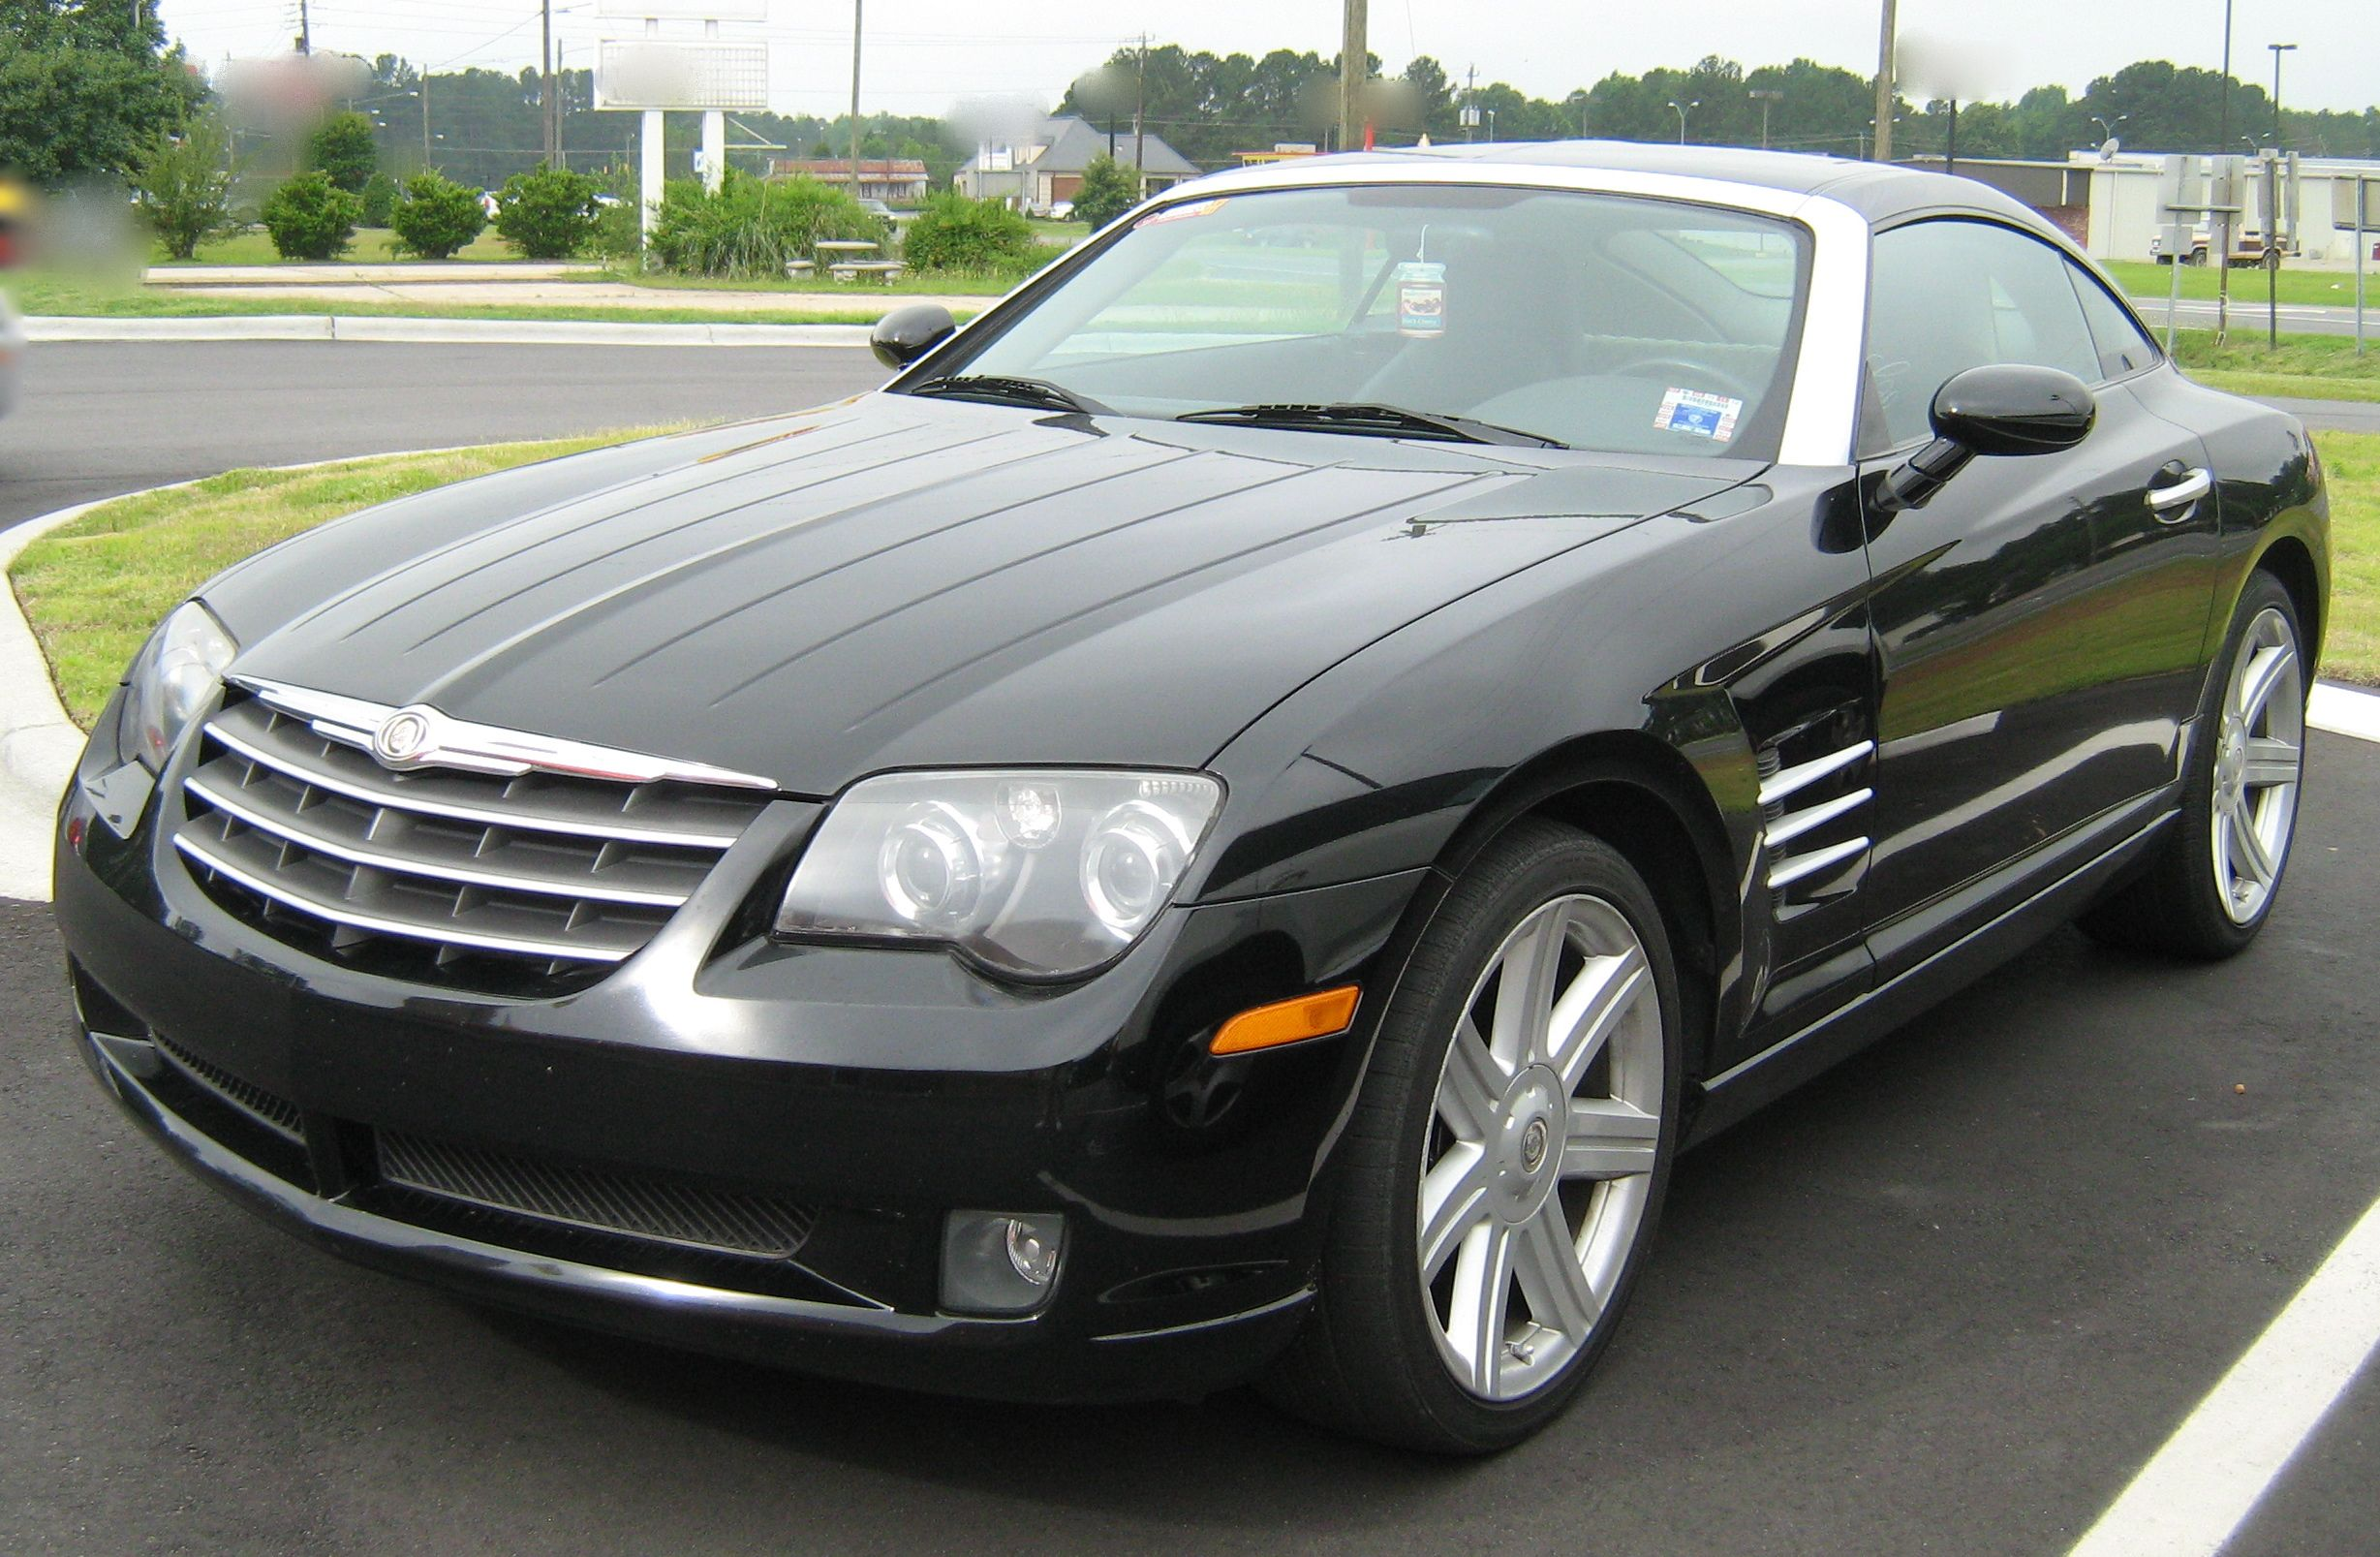 Chrysler Crossfire Coupe Mopars Chrysler Crossfire Crossfire